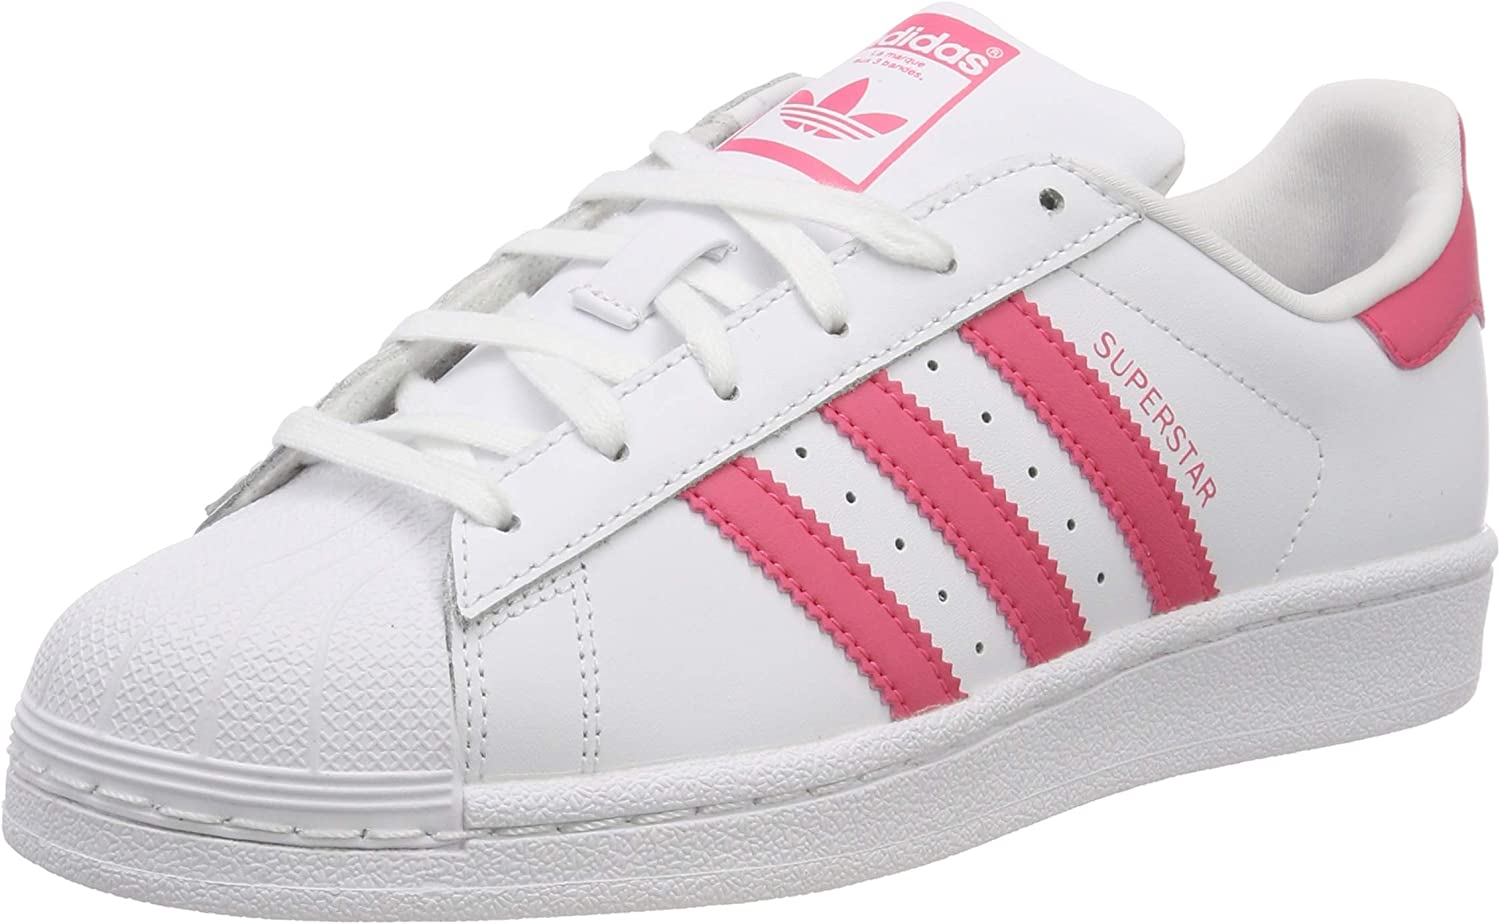 cristiano Vacante fiabilidad  adidas Unisex Kid's Superstar J-cg6608 Fitness Shoes: Amazon.co.uk: Shoes &  Bags